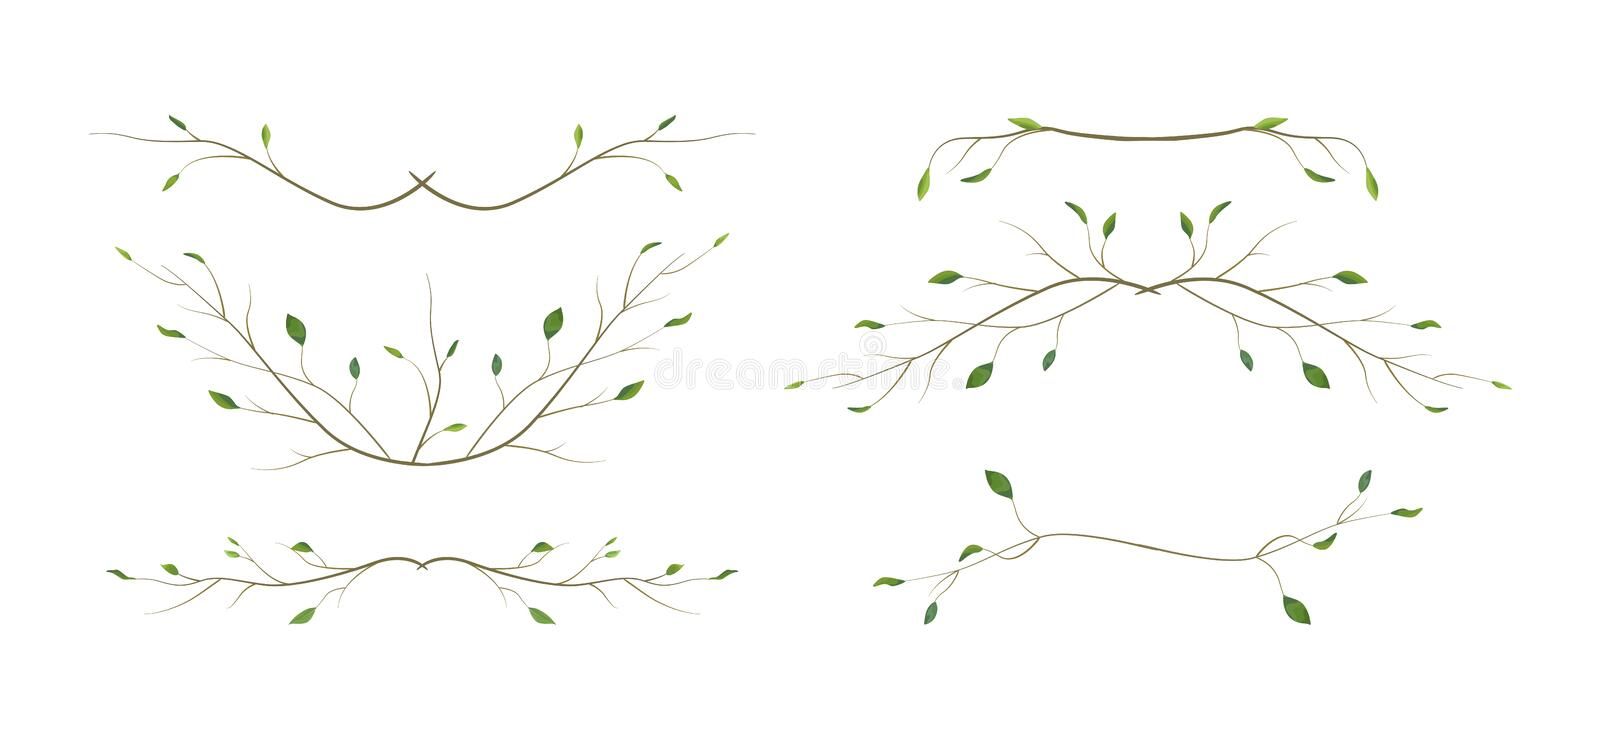 Tree branch twig designer art different foliage natural branches, leaves anniversary text page divider elements watercolor style s stock illustration